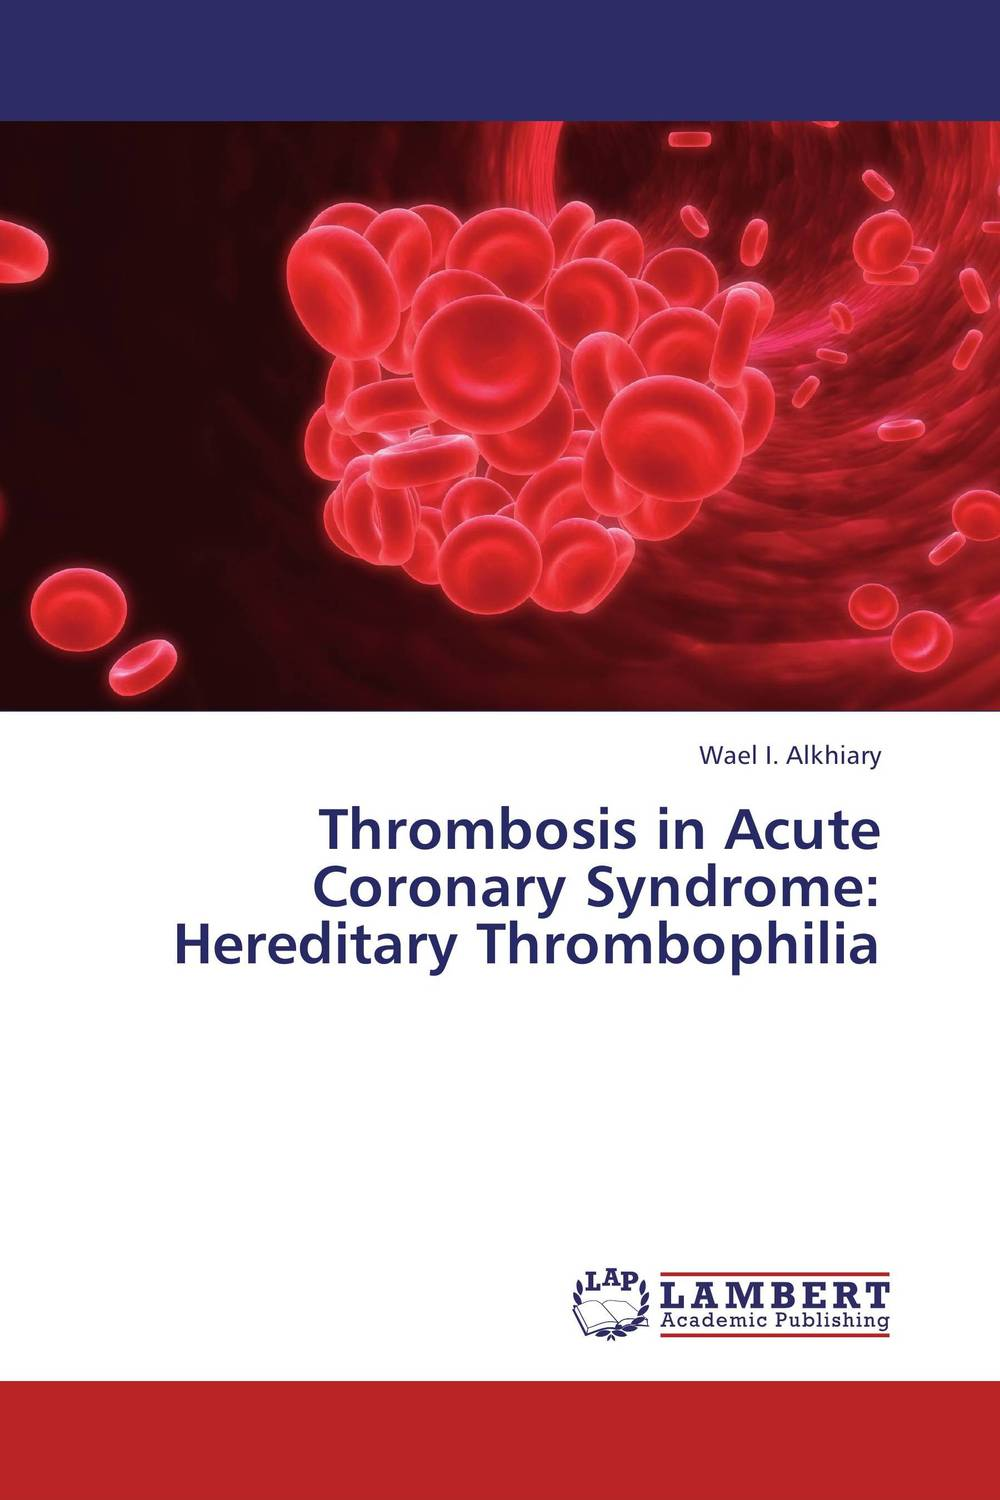 Thrombosis in Acute Coronary Syndrome: Hereditary Thrombophilia coronary heart disease atherosclerosis model coronary thrombosis model